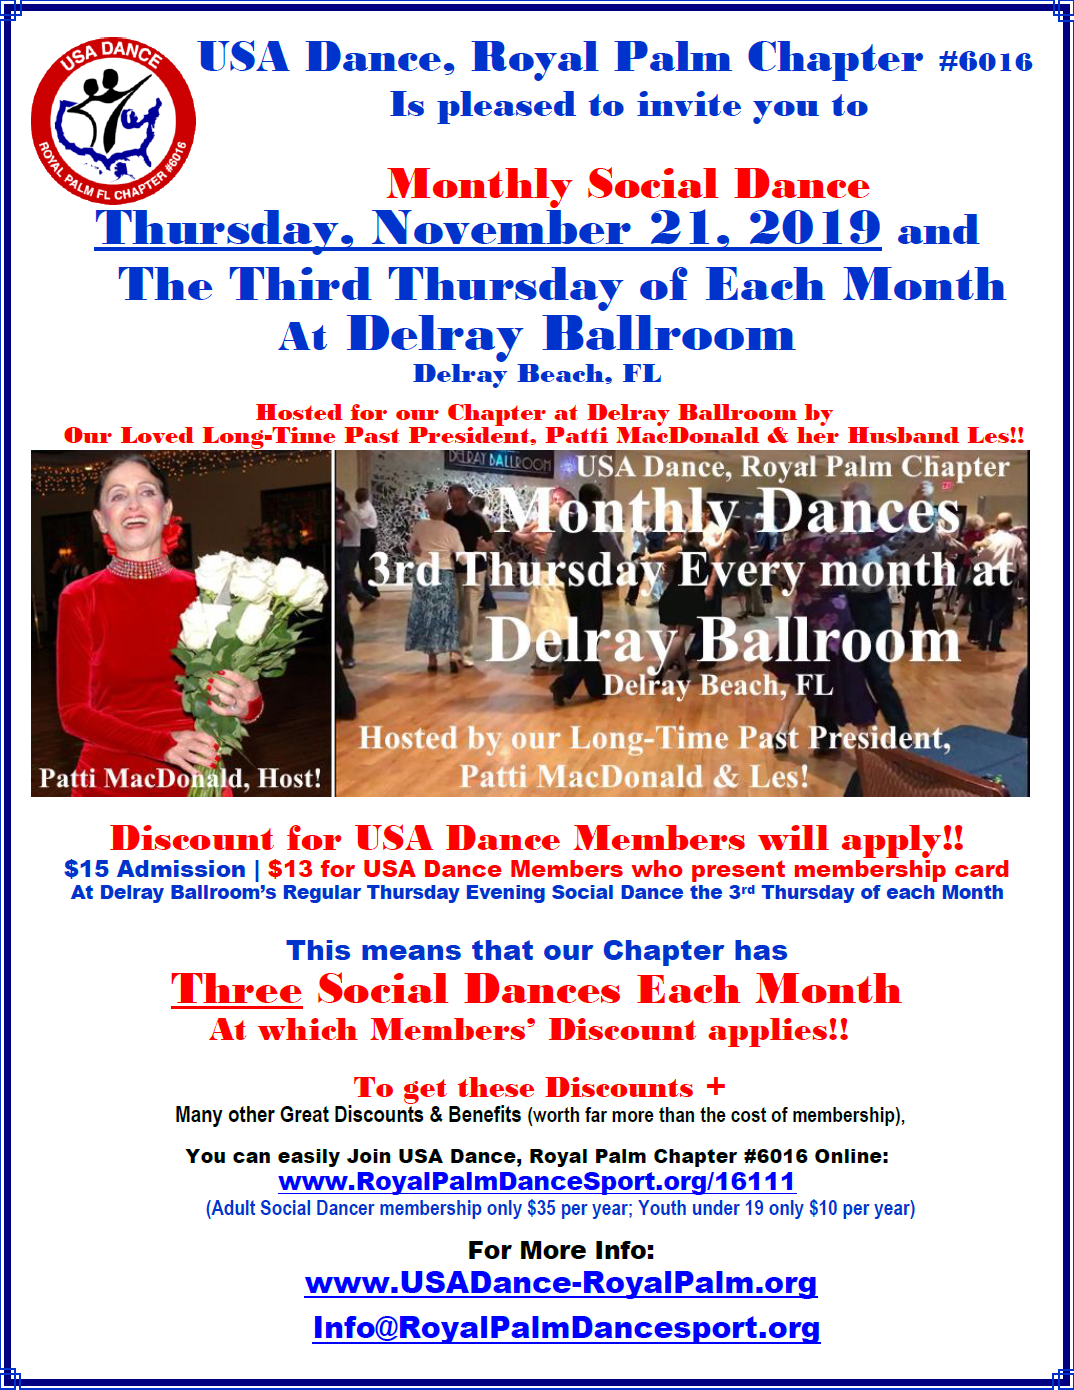 USA Dance, Royal Palm Chapter Monthly Dance: Thursday, November 21 & 3rd Thursday Every Month at Delray Ballroom